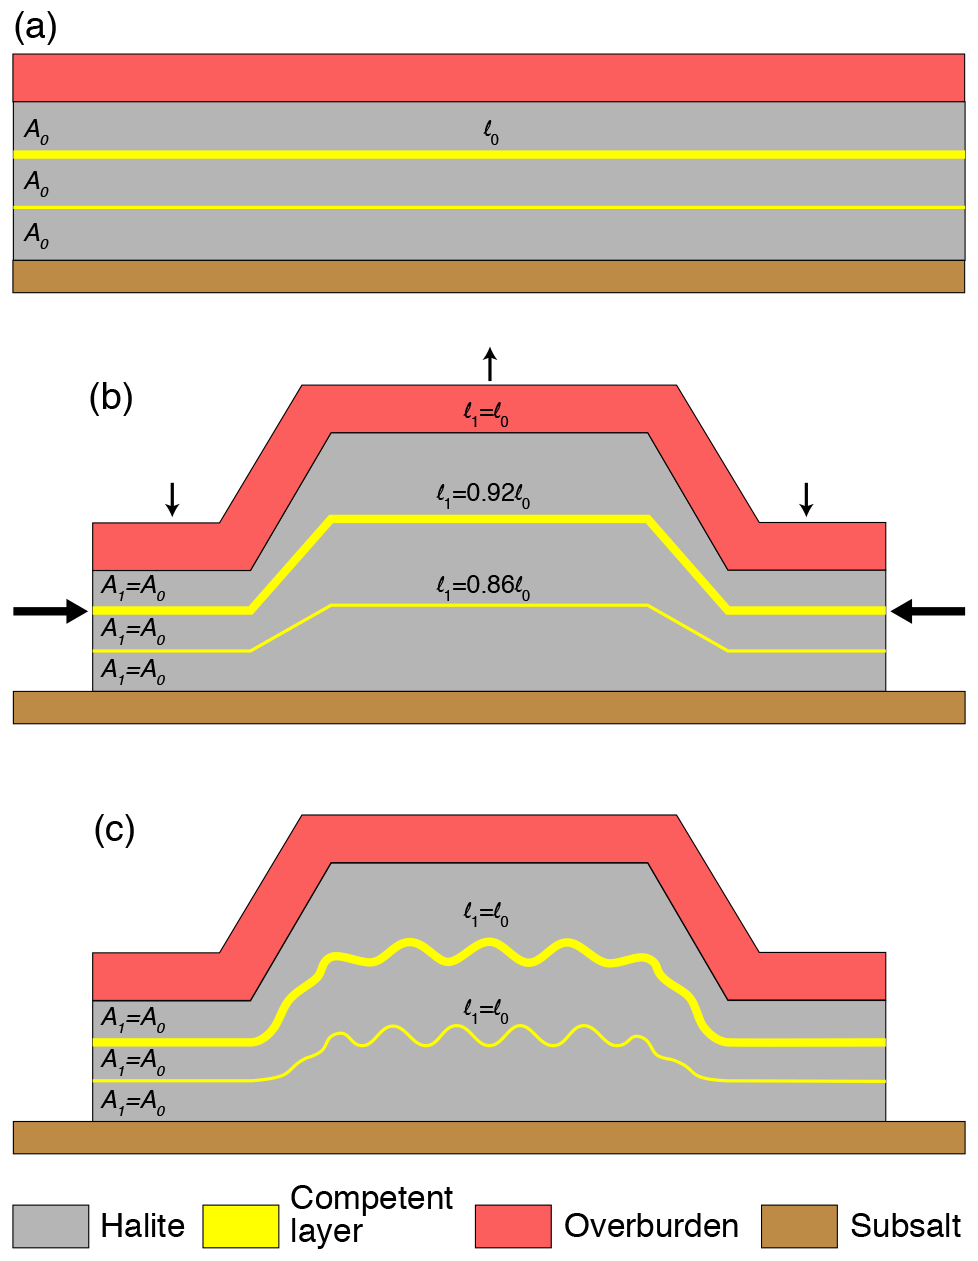 SE - Deformation of intrasalt competent layers in different modes of